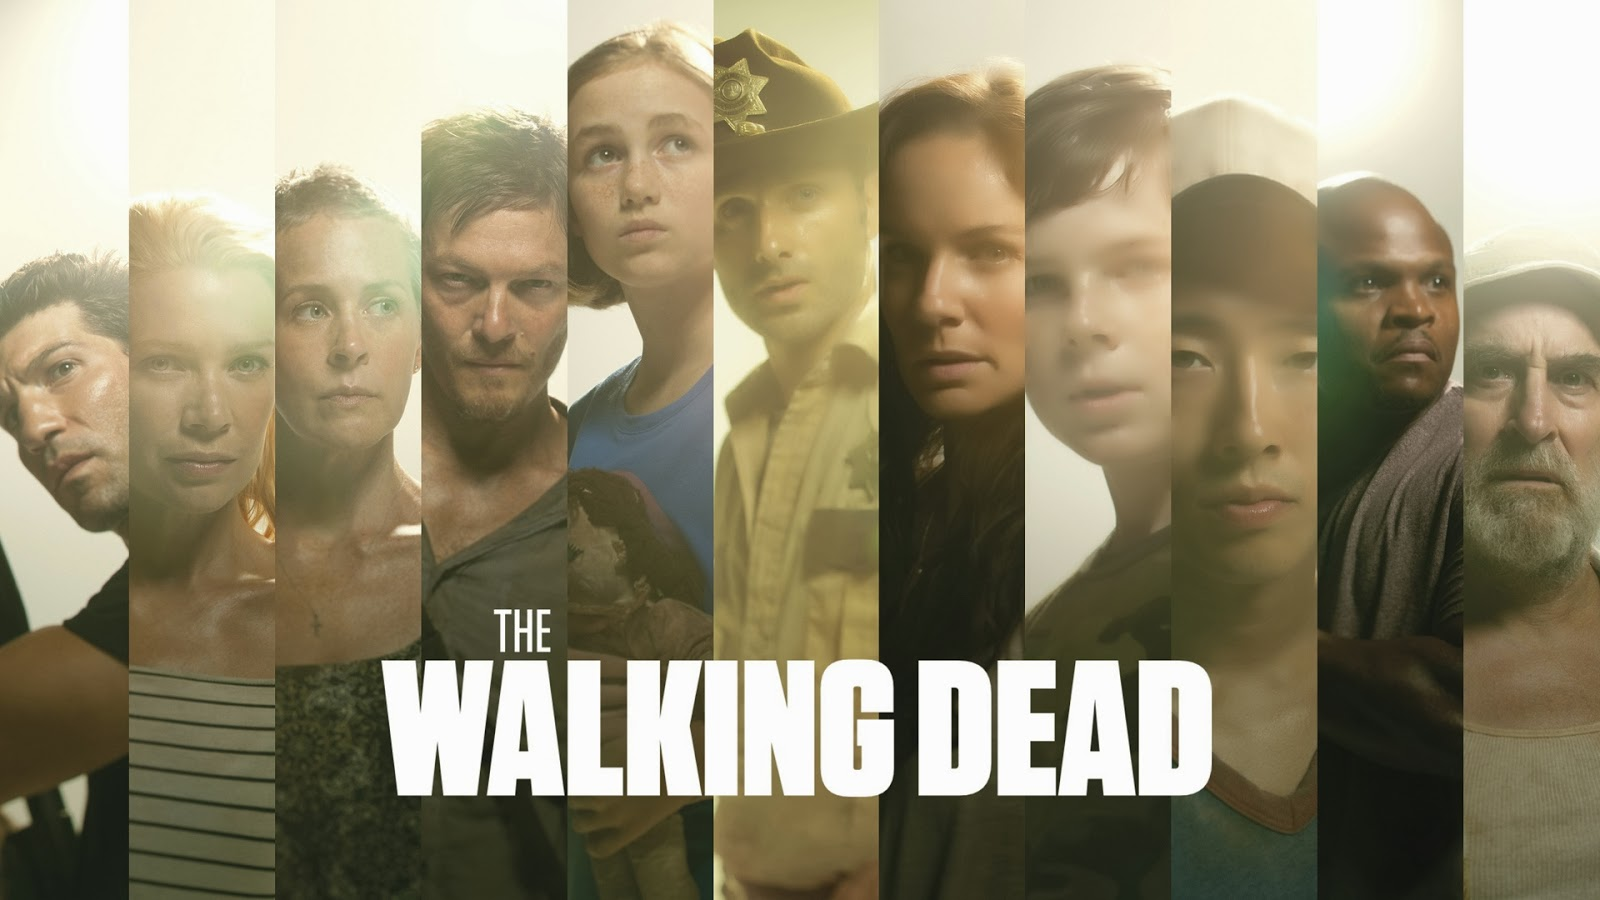 The Walking Dead Bs.To